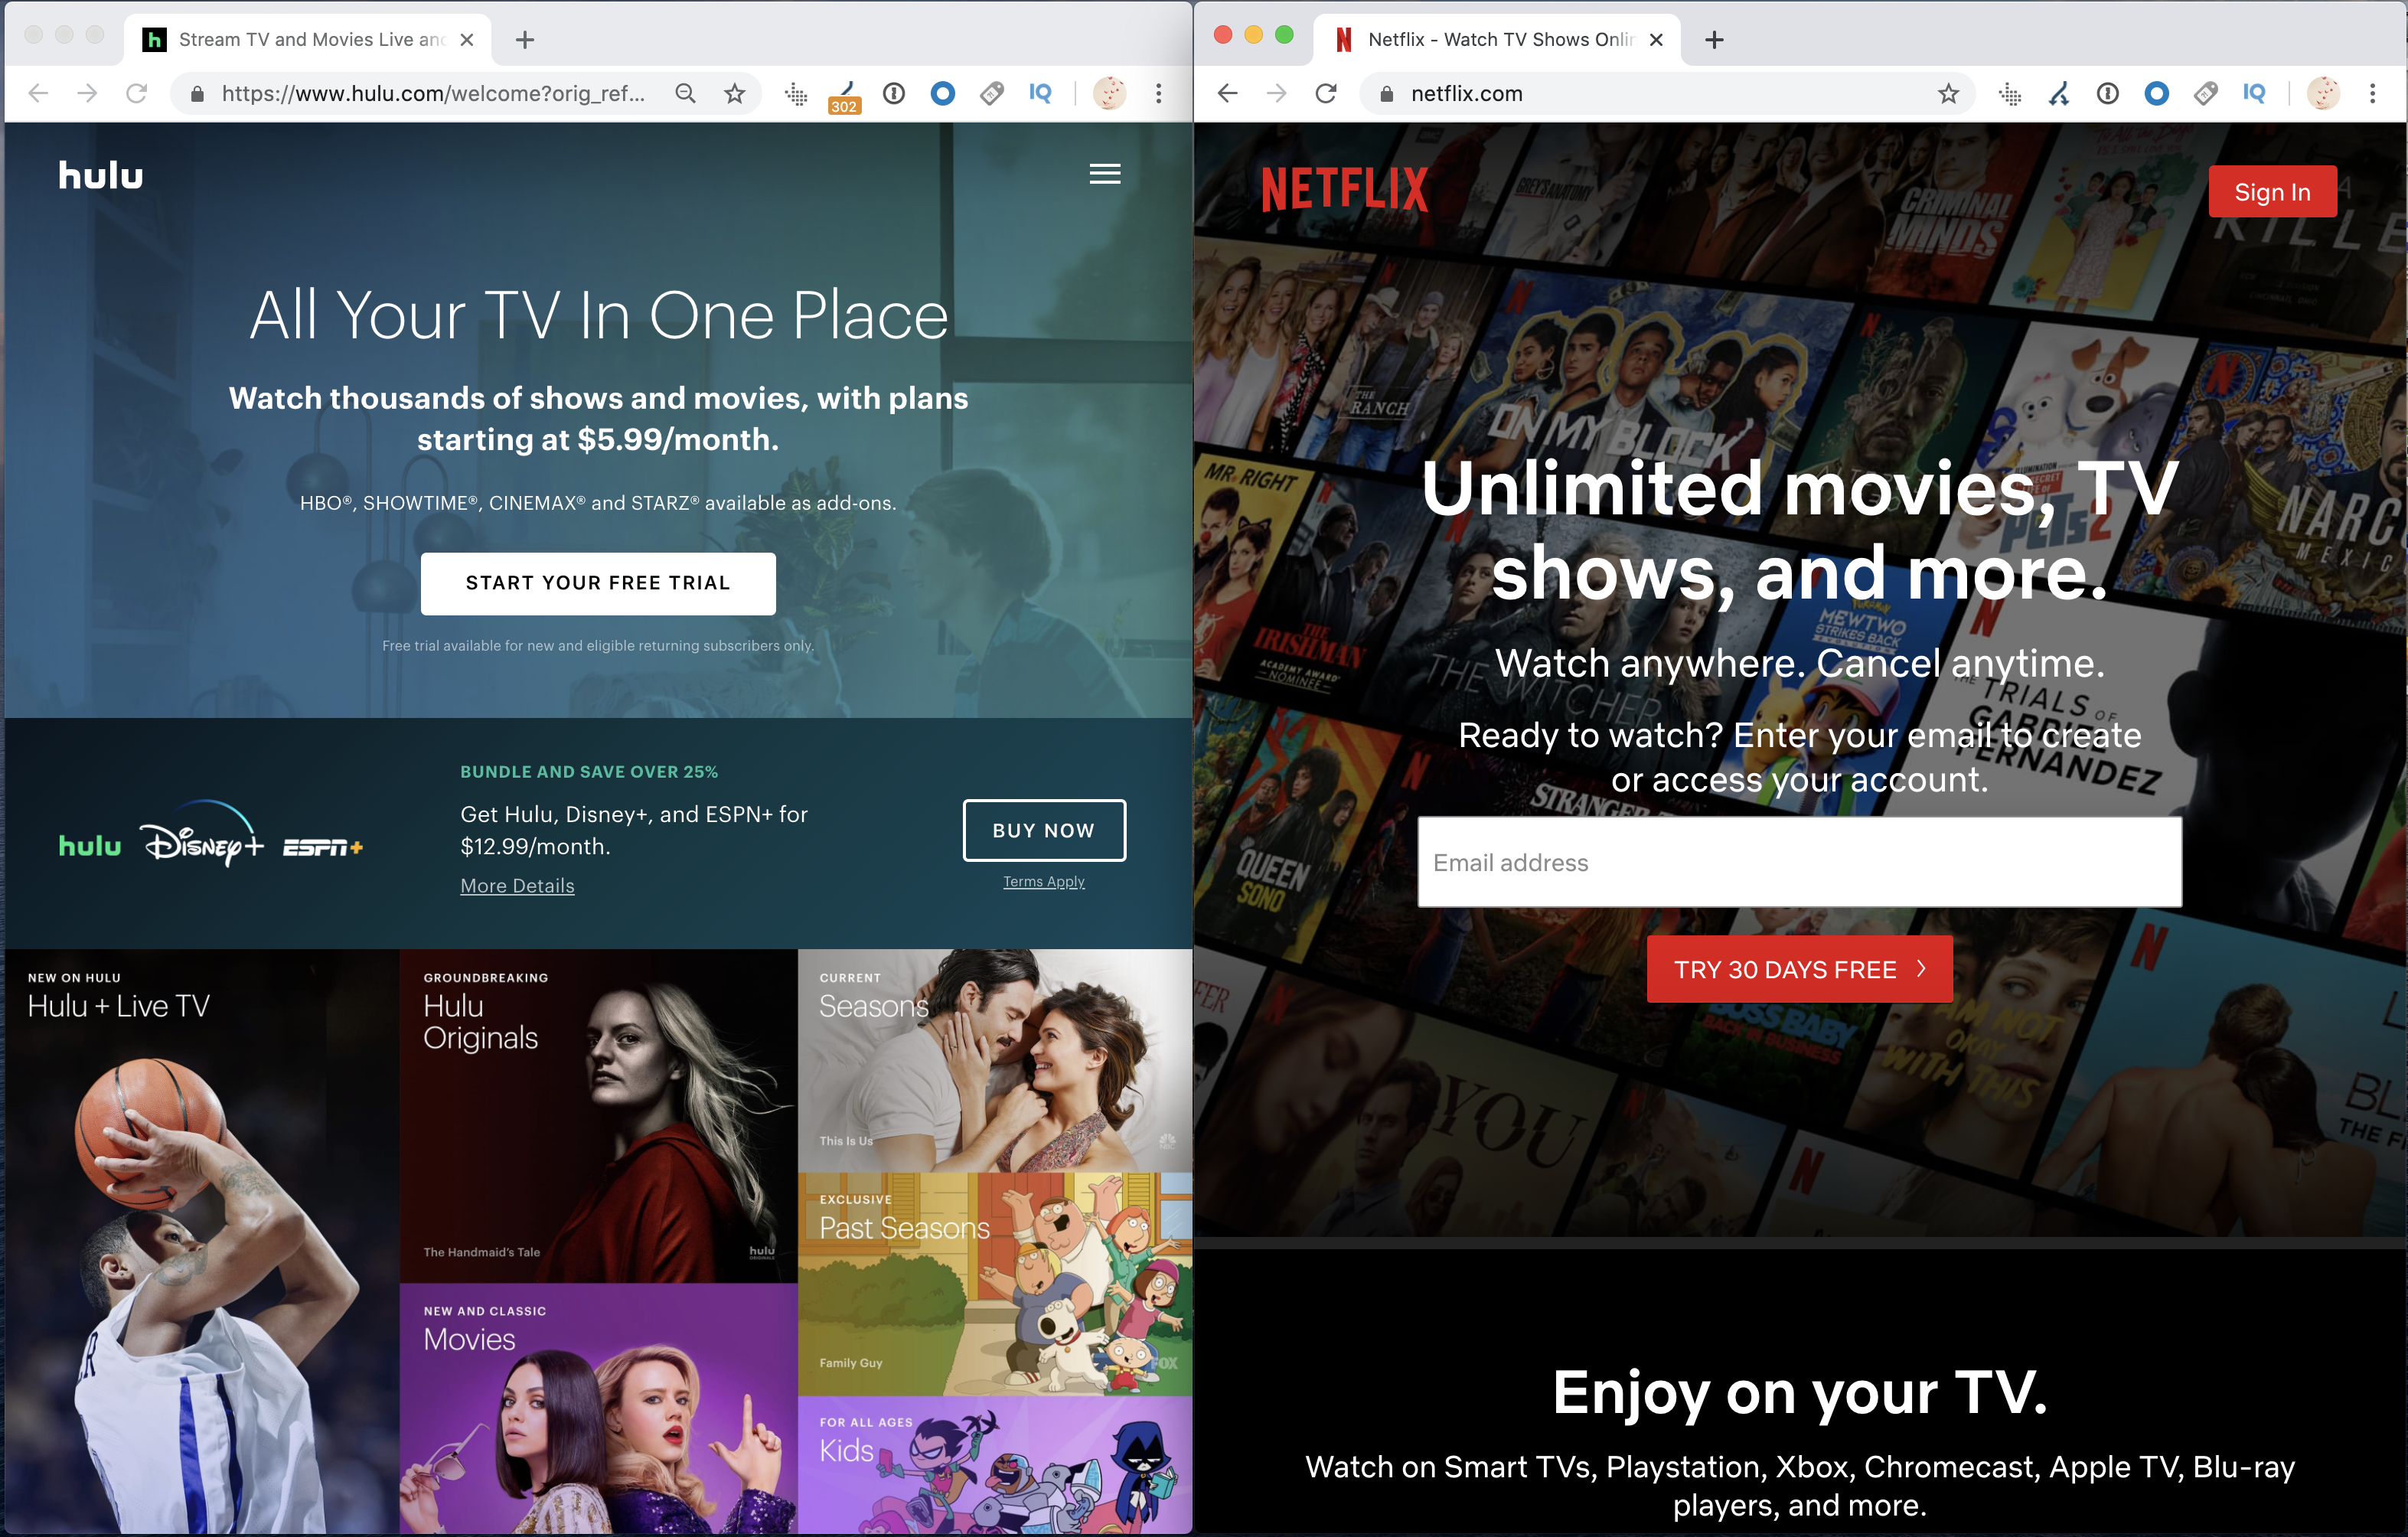 Hulu VS Netflix websites